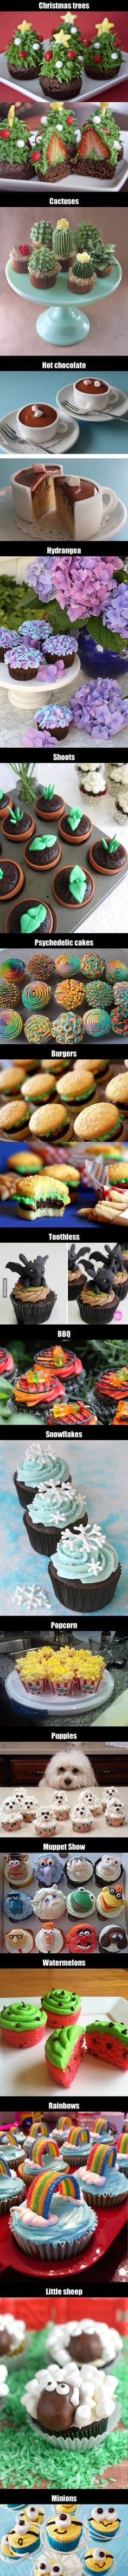 17 Incredible Cup Cake Ideas For Your Christmas Party - 9GAG